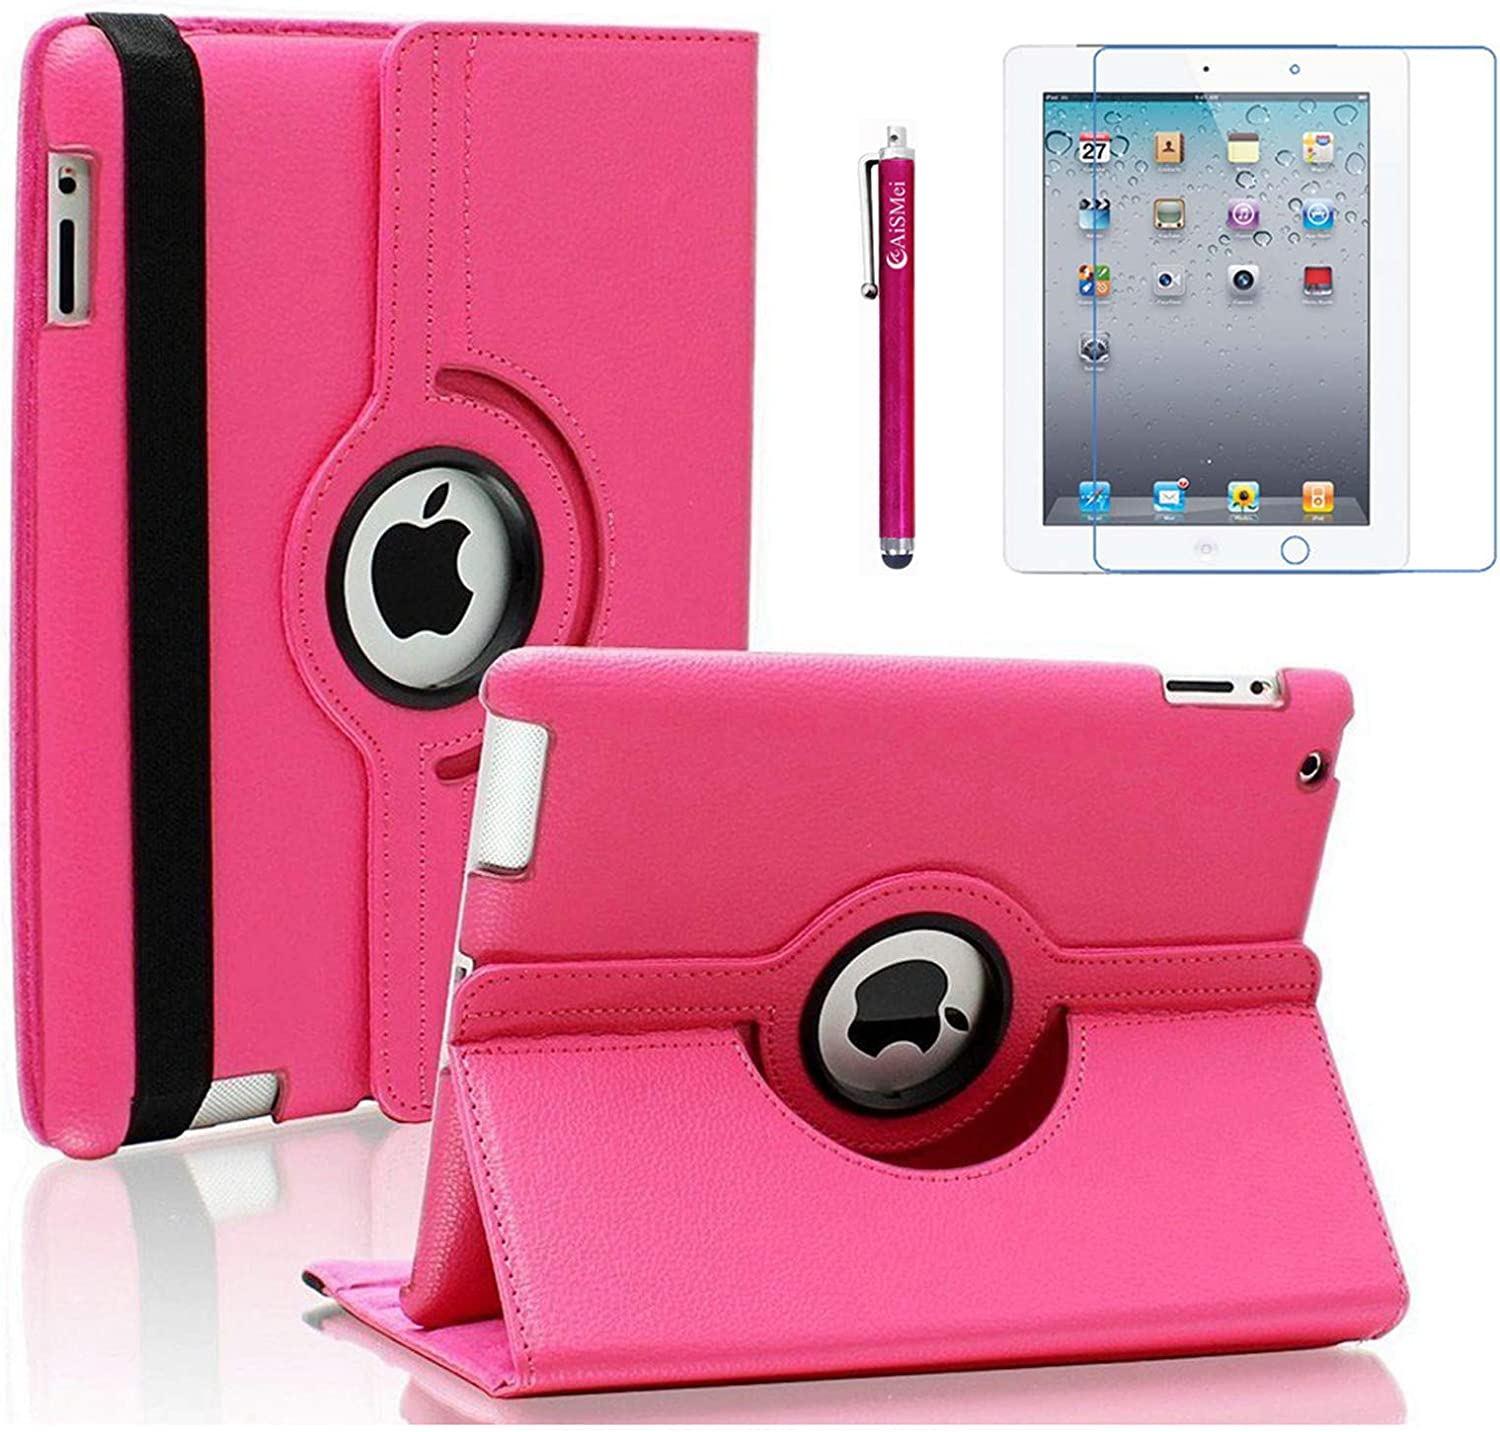 AiSMei Case for iPad 4 (2012), Rotating Stand Case Cover for 9.7'' Apple iPad A1395, A1396, A1397, A1403, A1416, A1430, A1458, A1459, A1460, Bonus Stylus + Film, Rose Pink